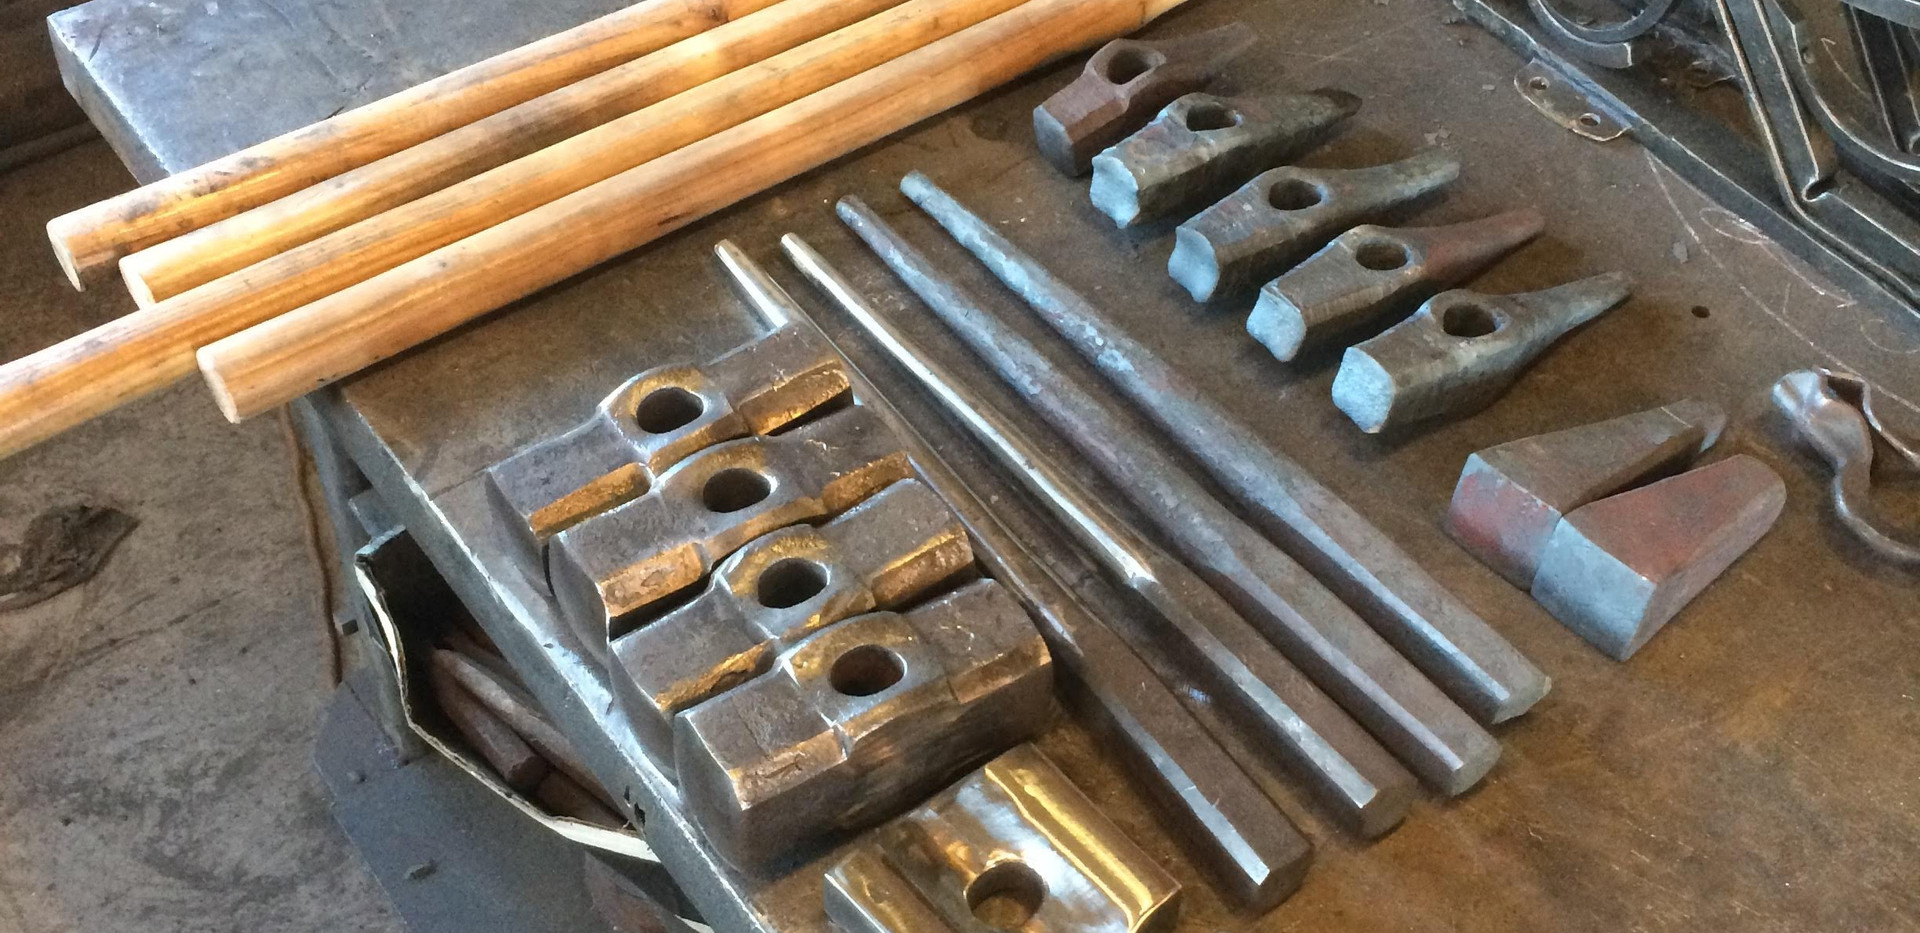 Hammer making tools